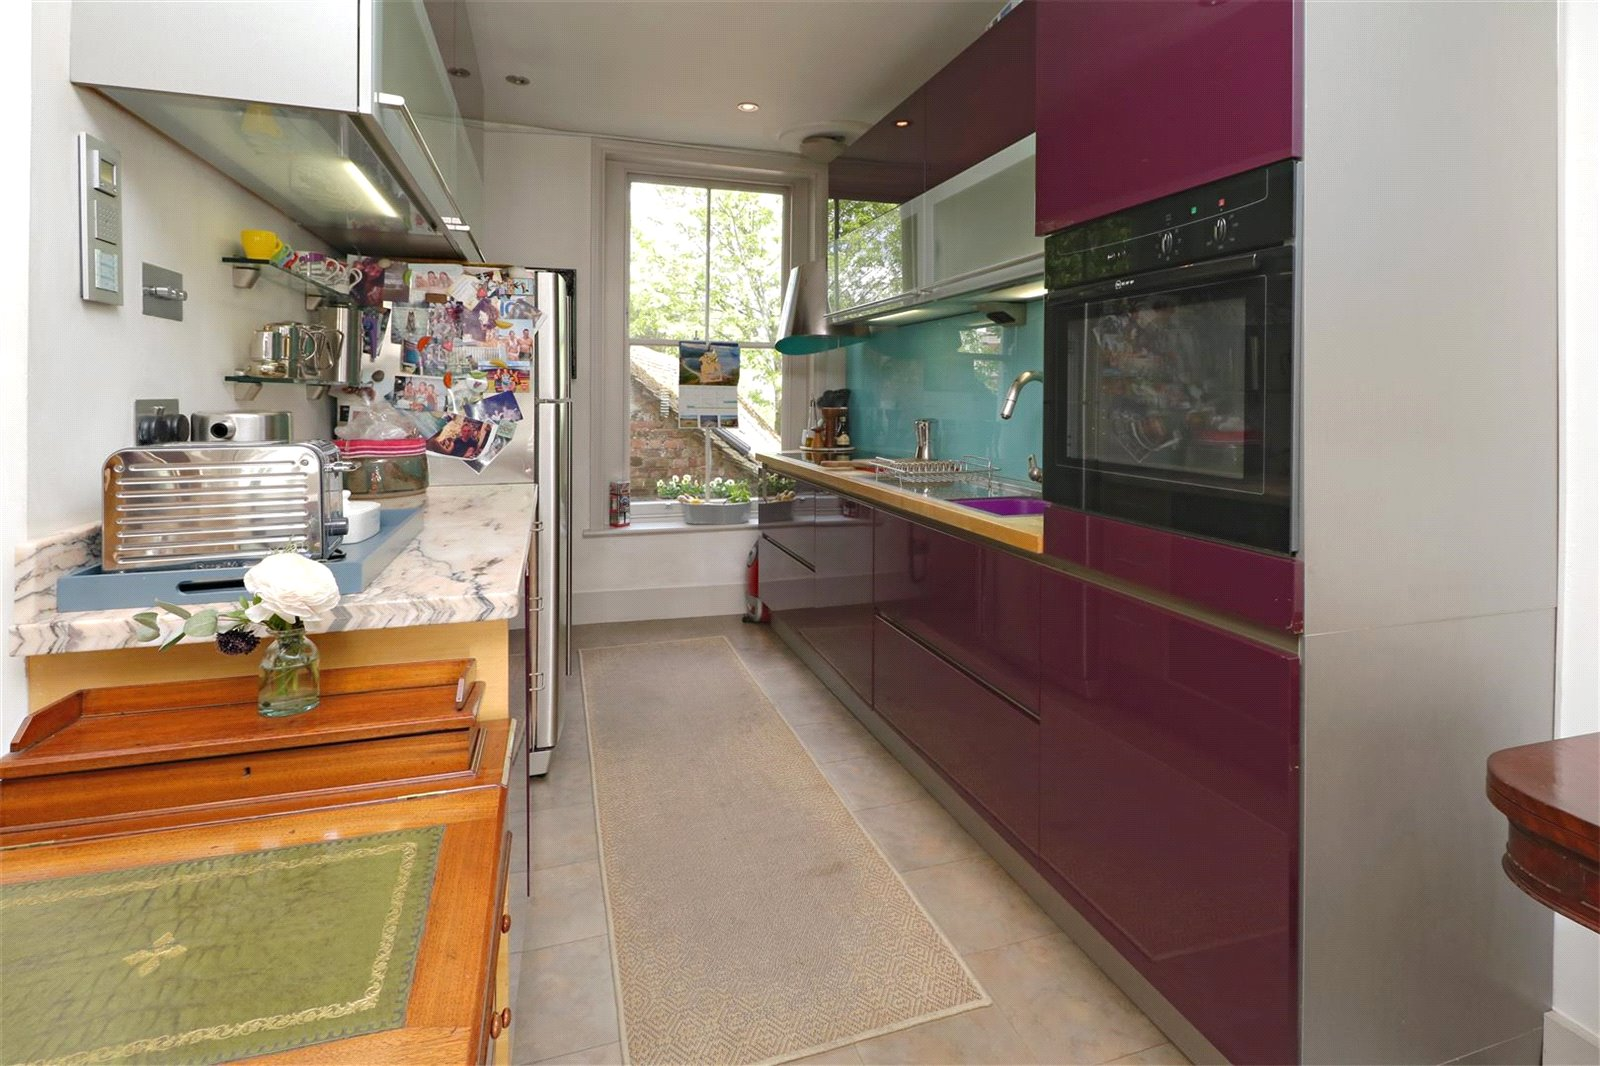 House for sale in Highgate, N6 5HX 2